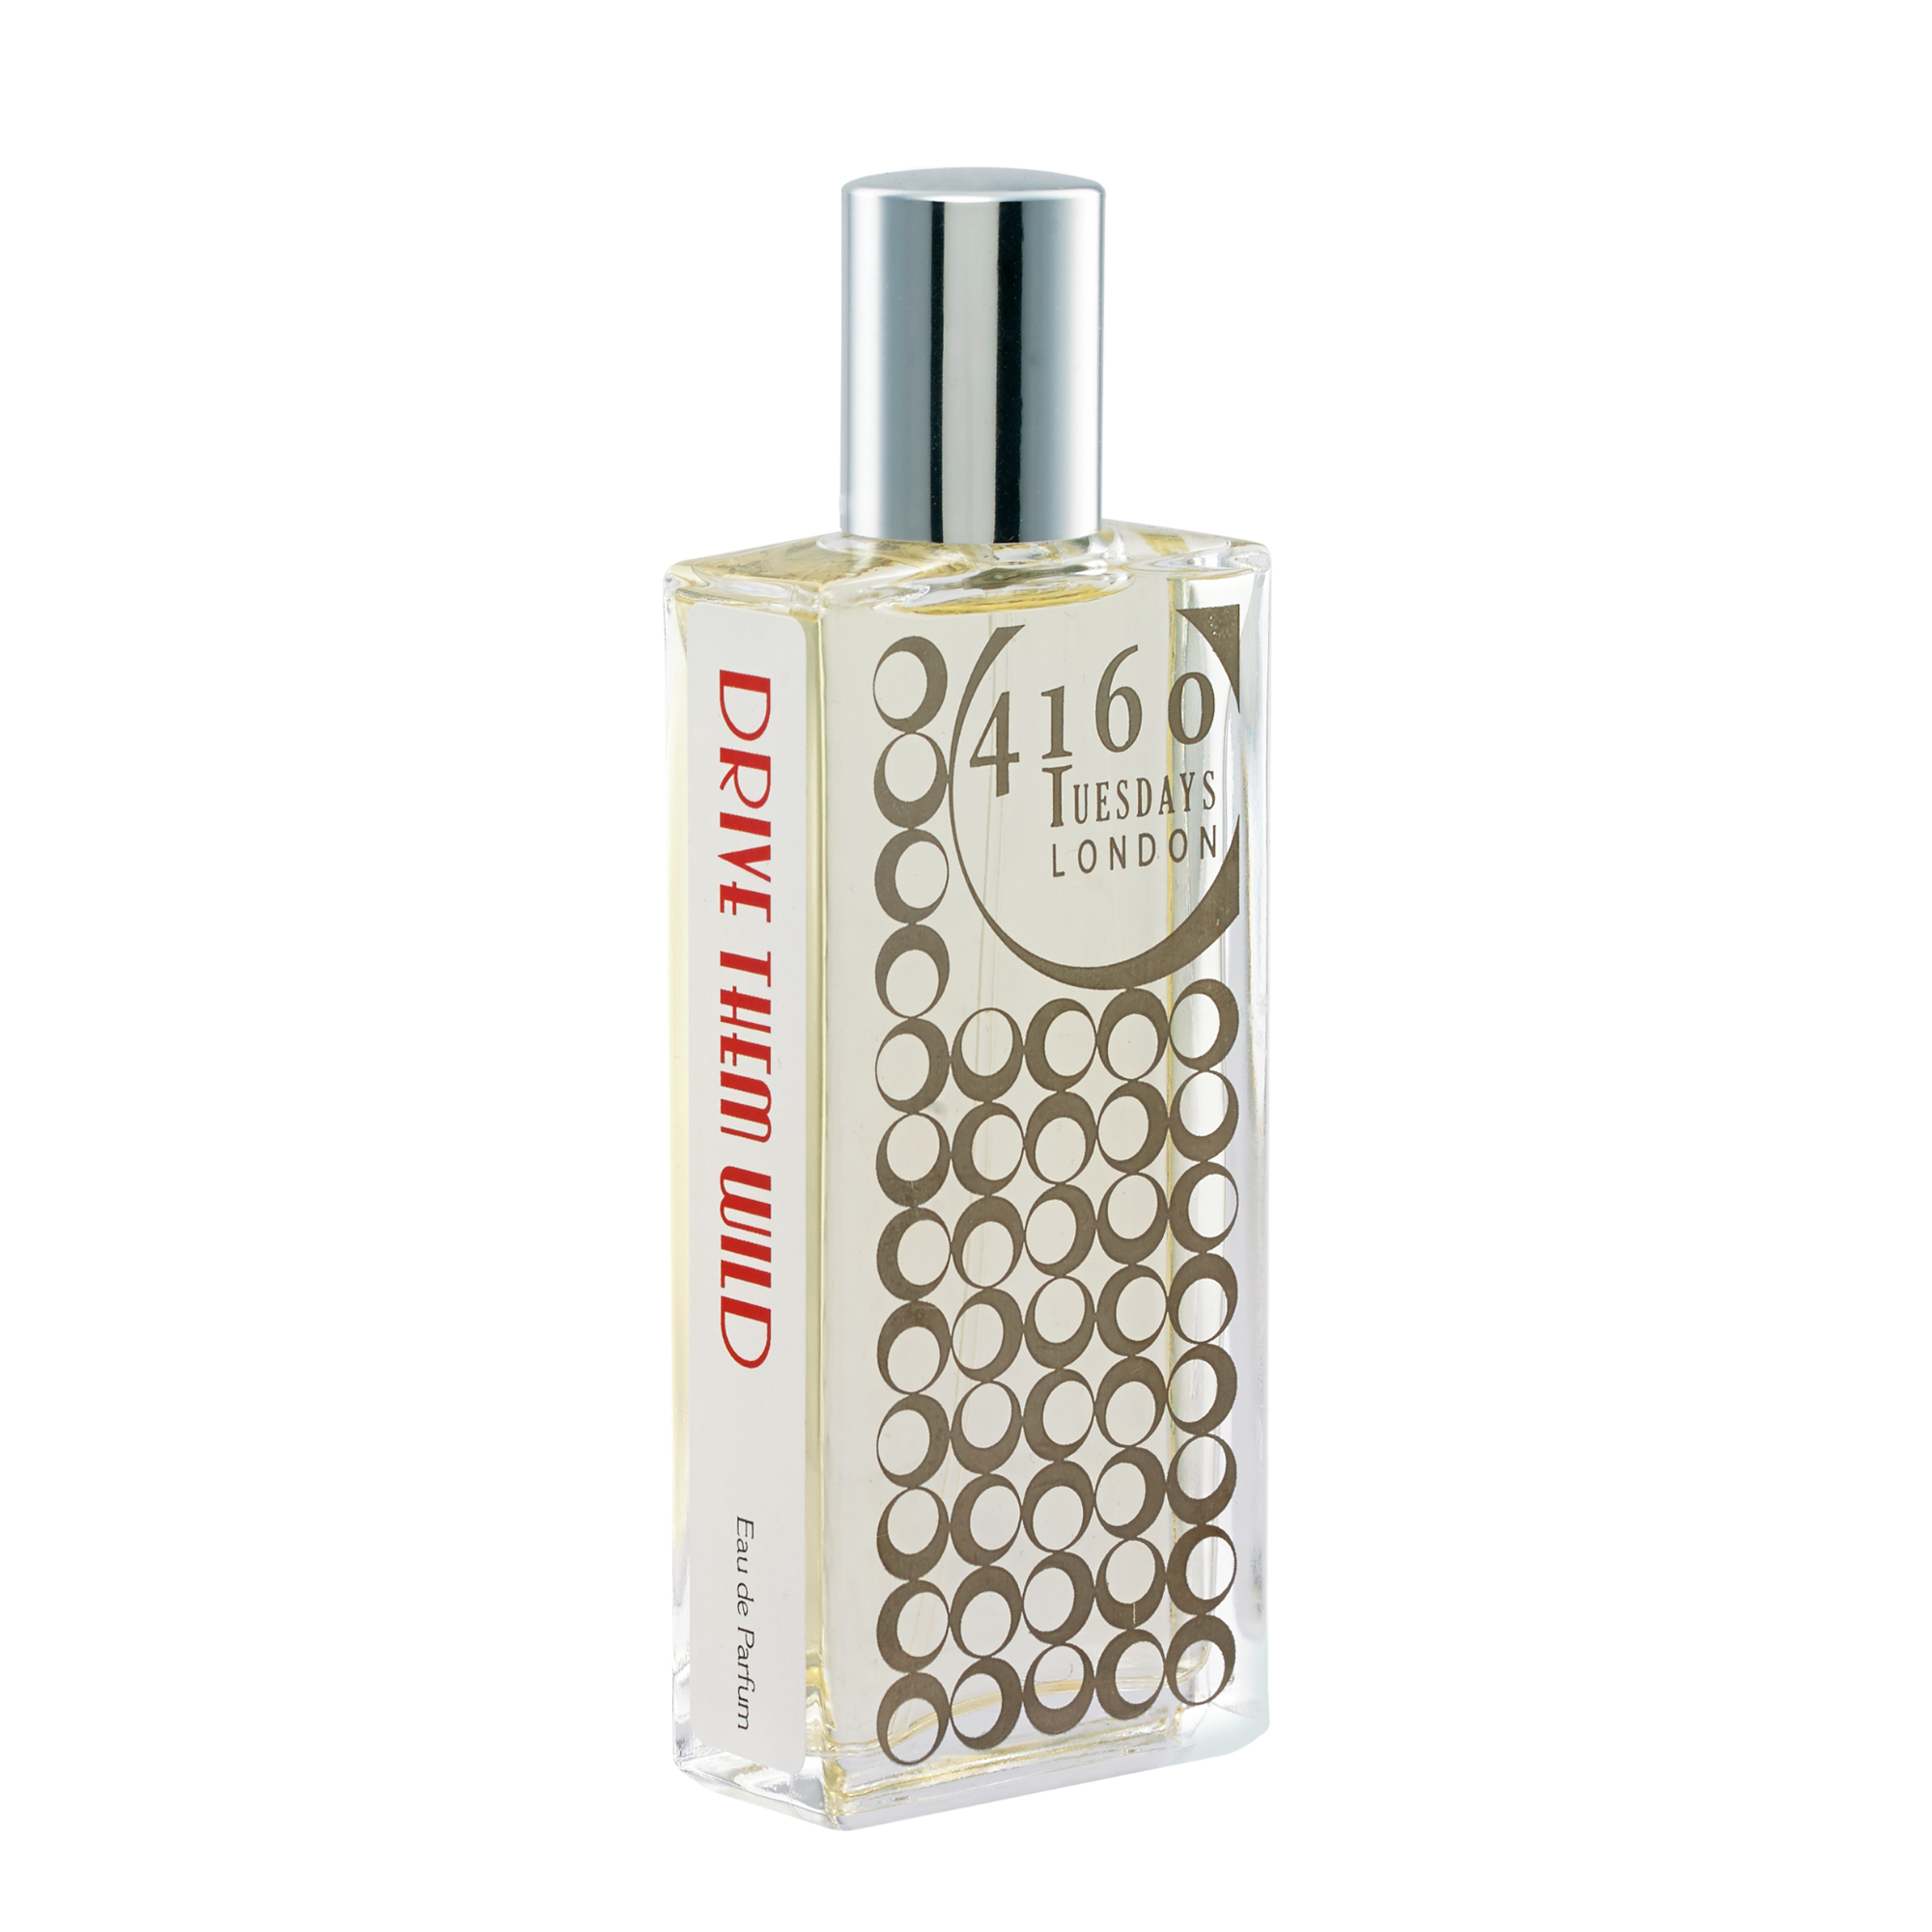 4160Tuesdays perfume in silver bottle